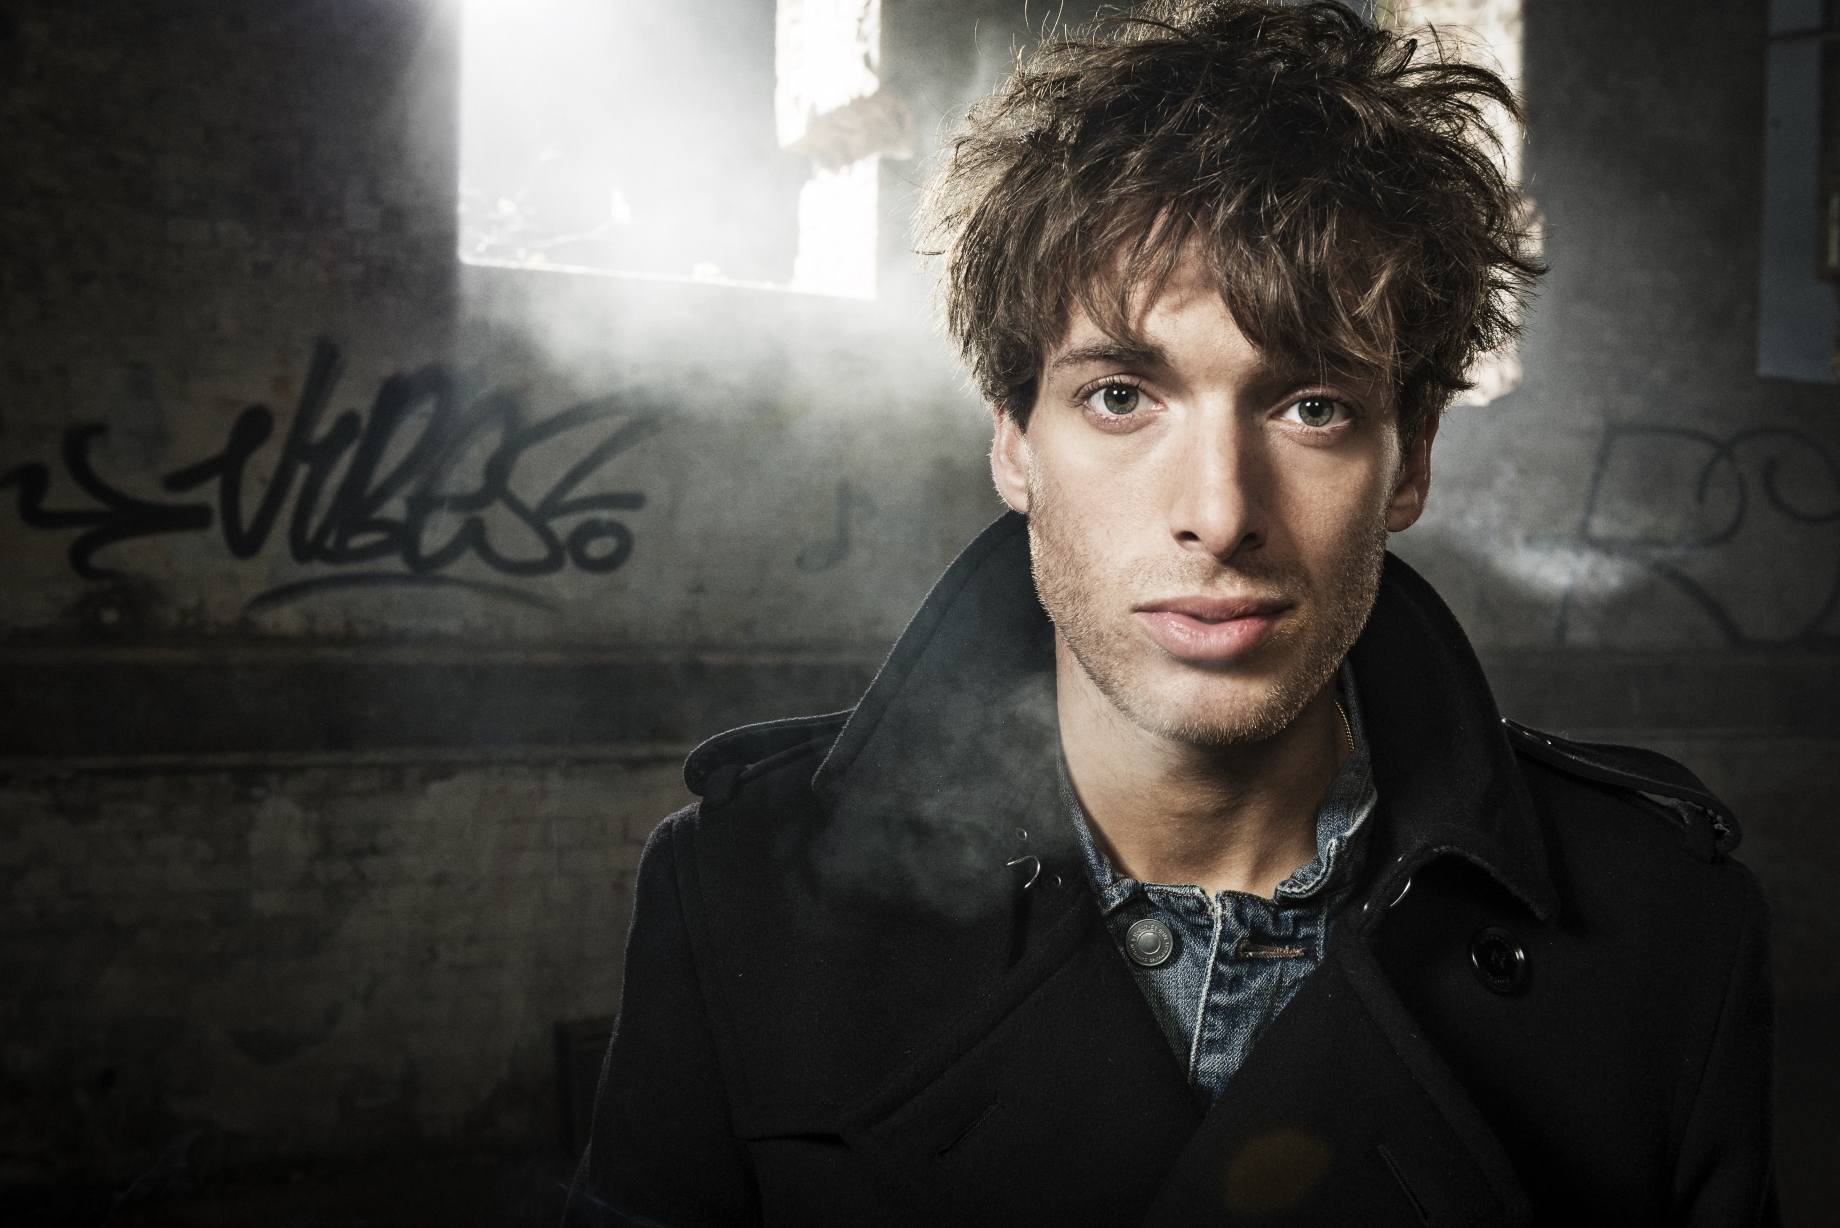 Paolo-Nutini-Press-Photo-2-Photo-Credit-Shamil-Tanna